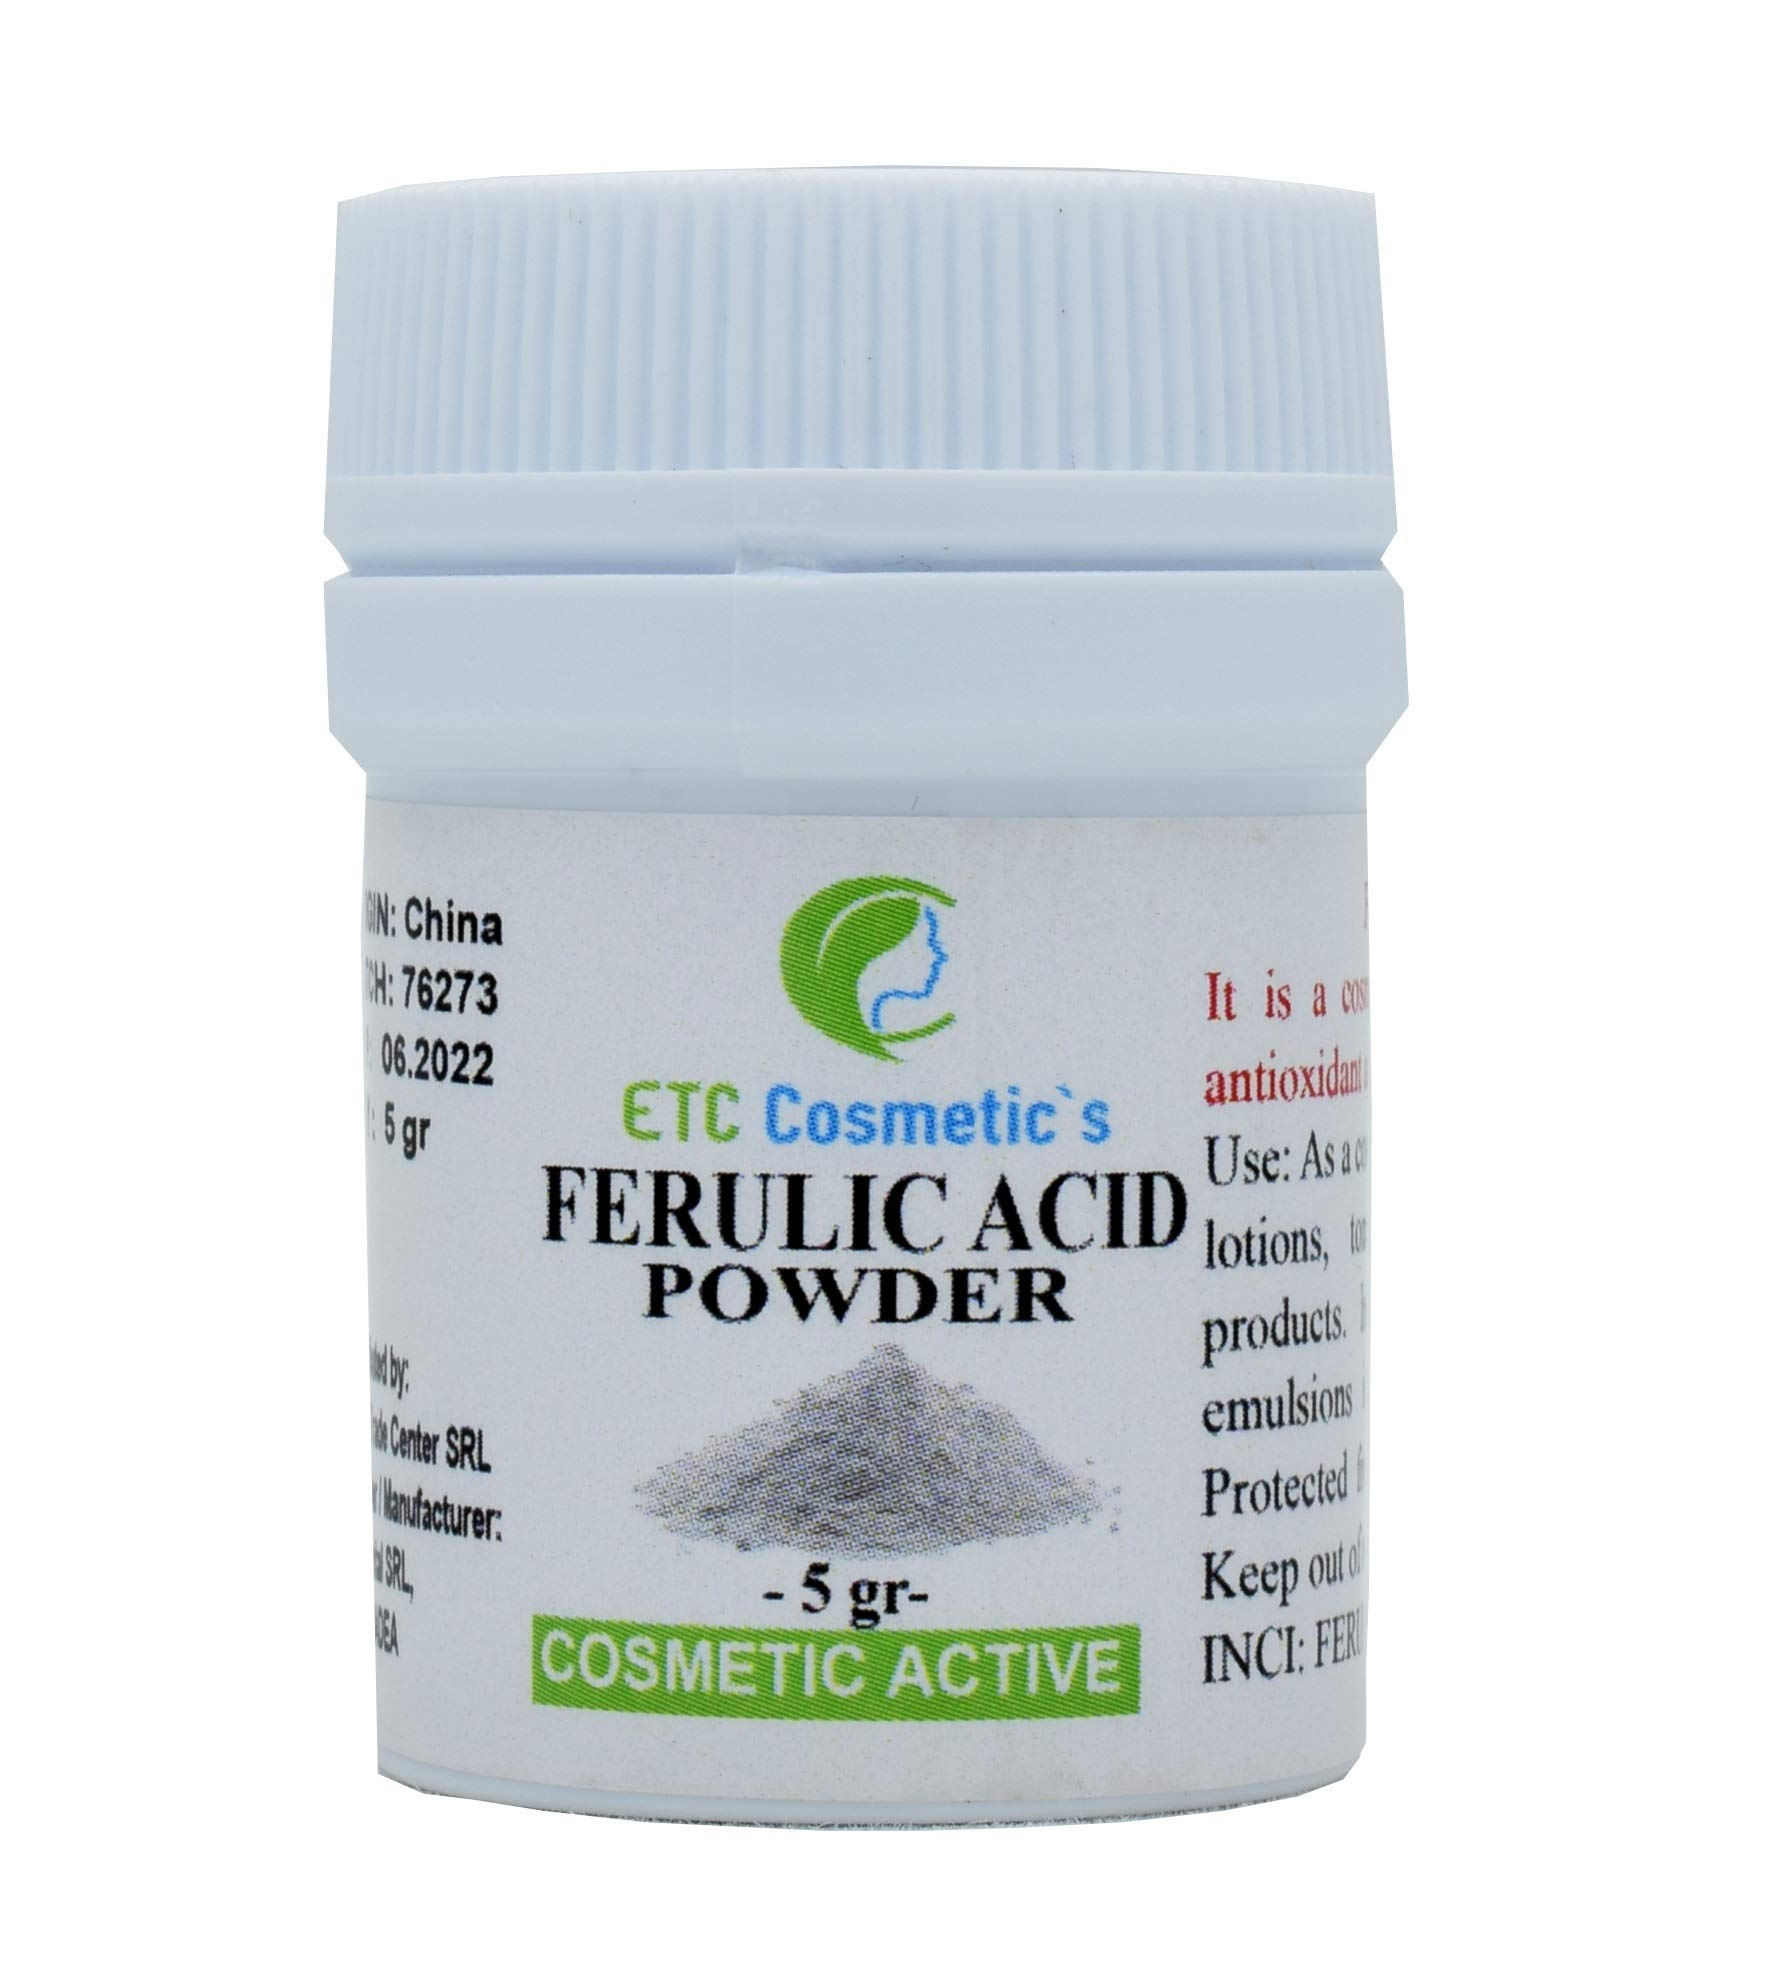 Pure Ferulic Acid Powder - 5 grams - A potent antioxidant and free radical destroyer | Stabilizes Vitamin C and protects cells from environmental damage, For use in creams, serums, lotions